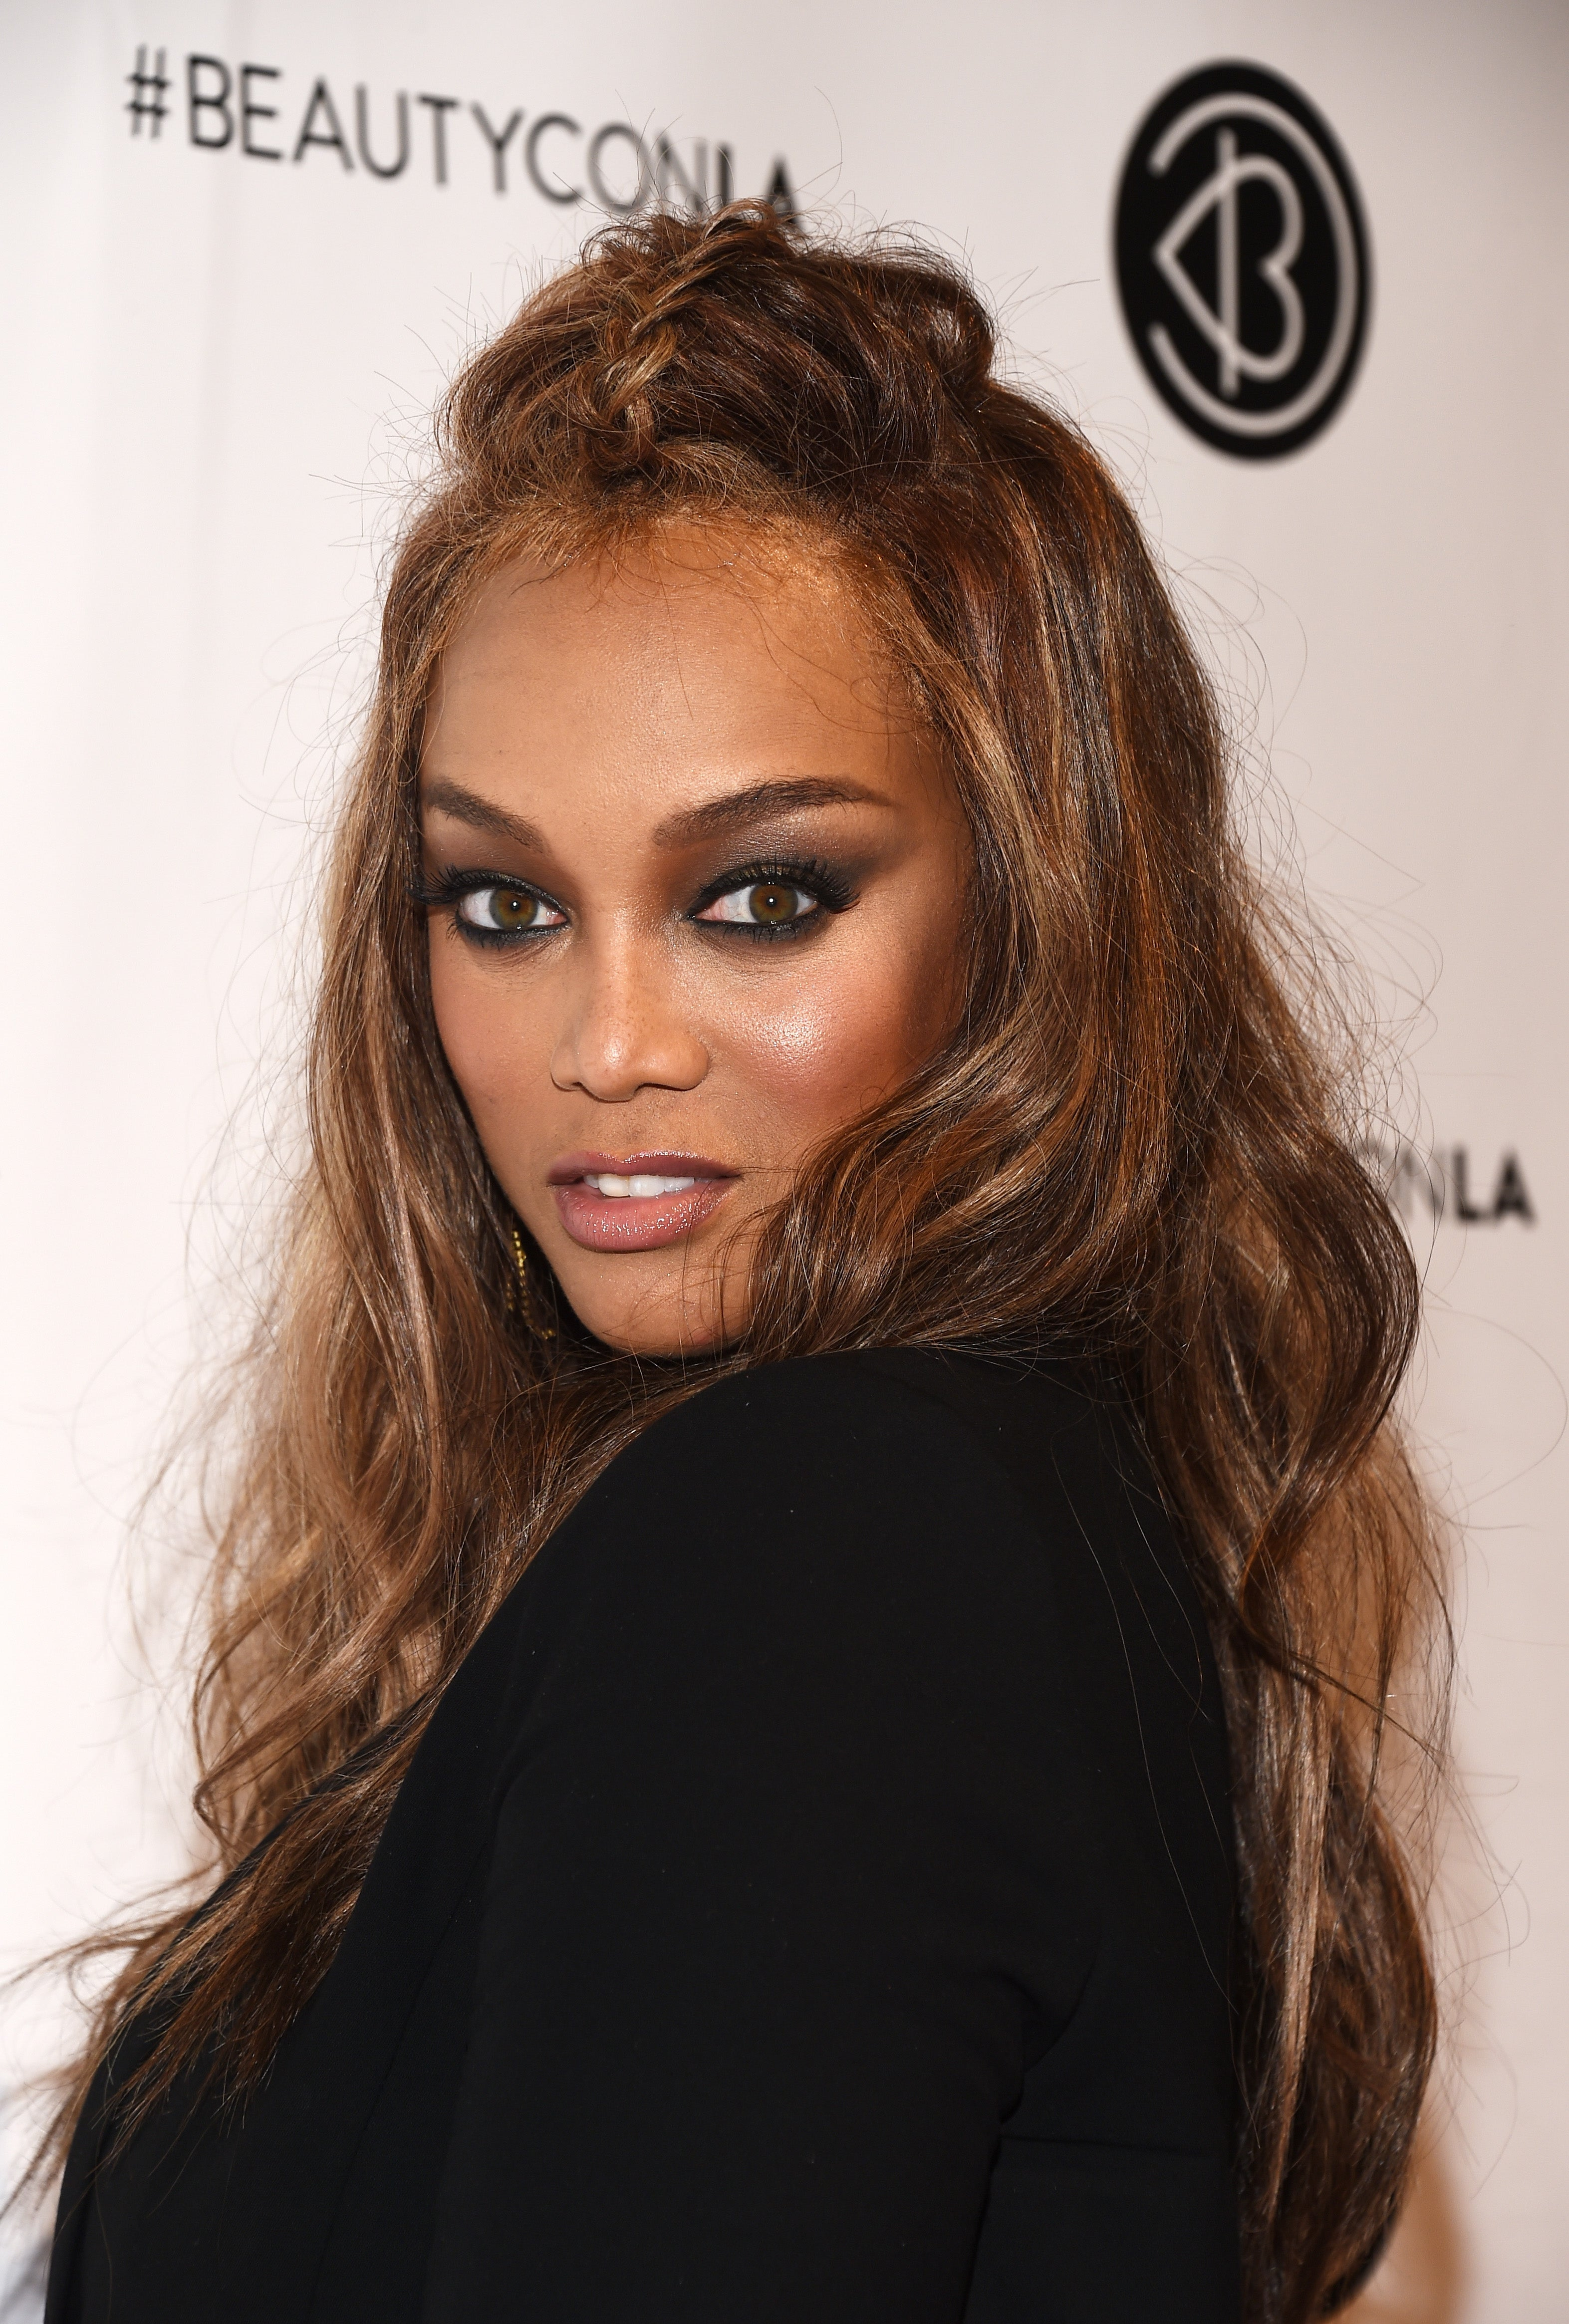 tyra banks tosses age limit for next season of america s next top